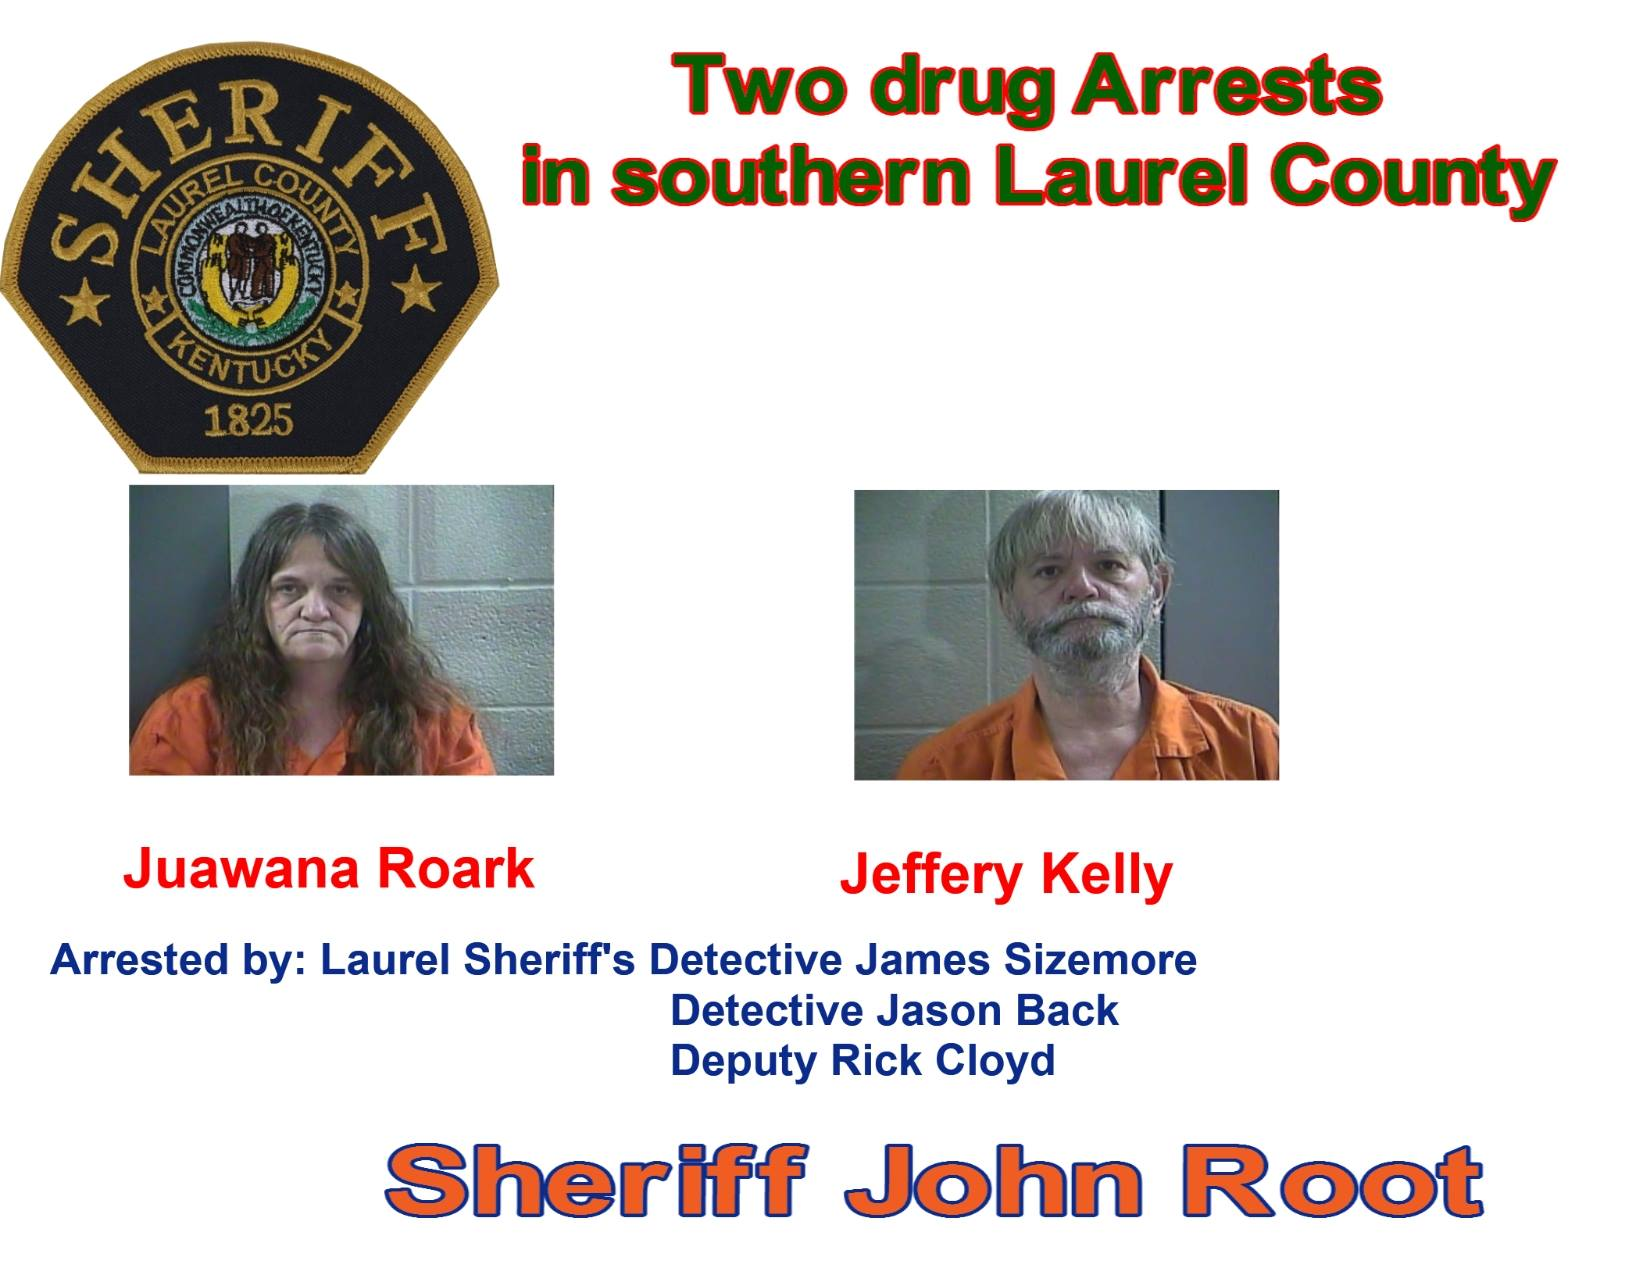 Two People Arrested In Laurel County Drug Bust